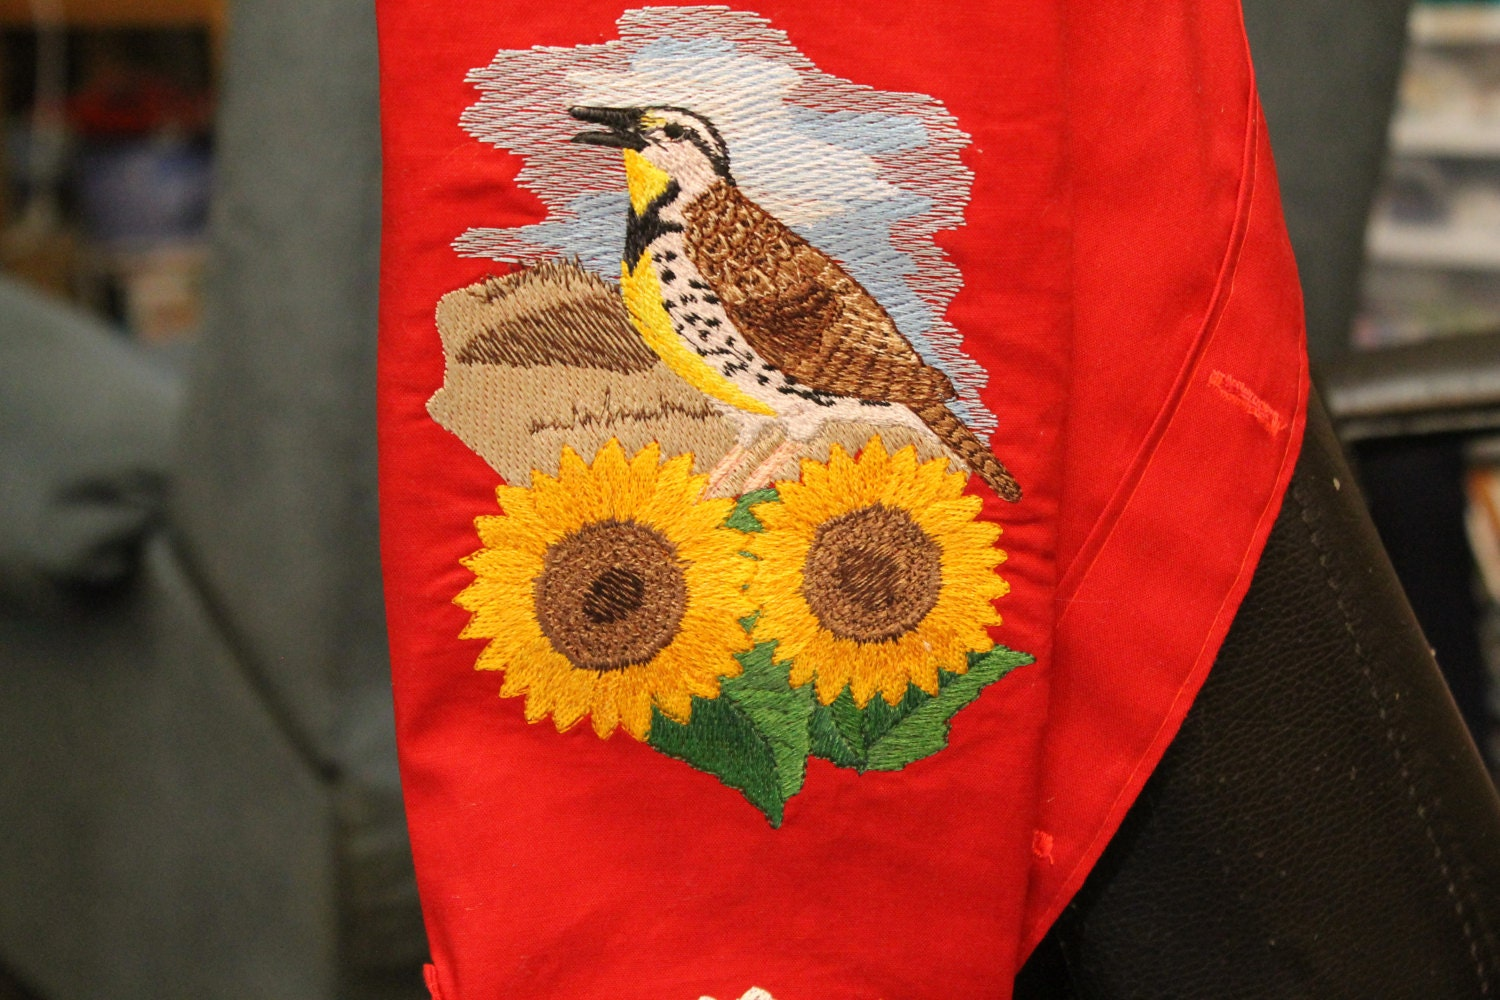 ND state bird(Meadowlark) and sunflowers